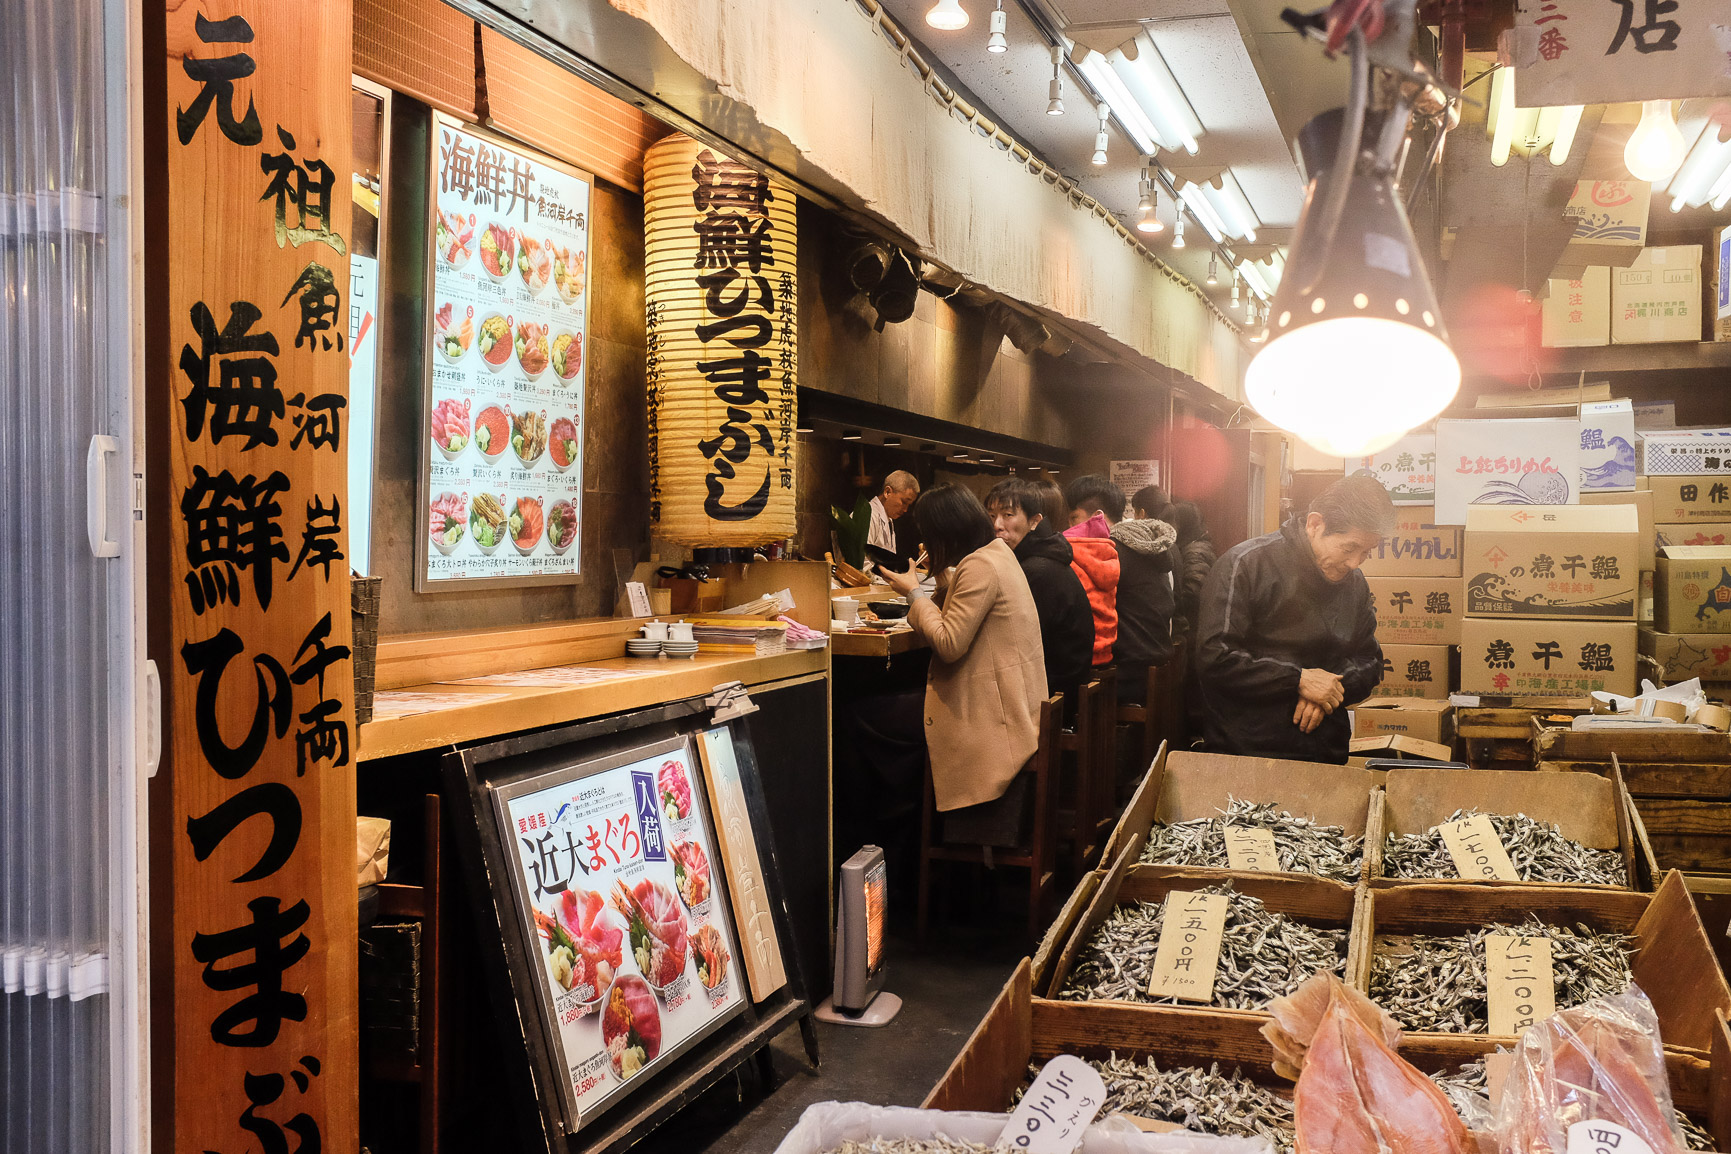 Get up close and personal with the chefs, eat at the sushi bar and watch them masterfully prepare the fish for you